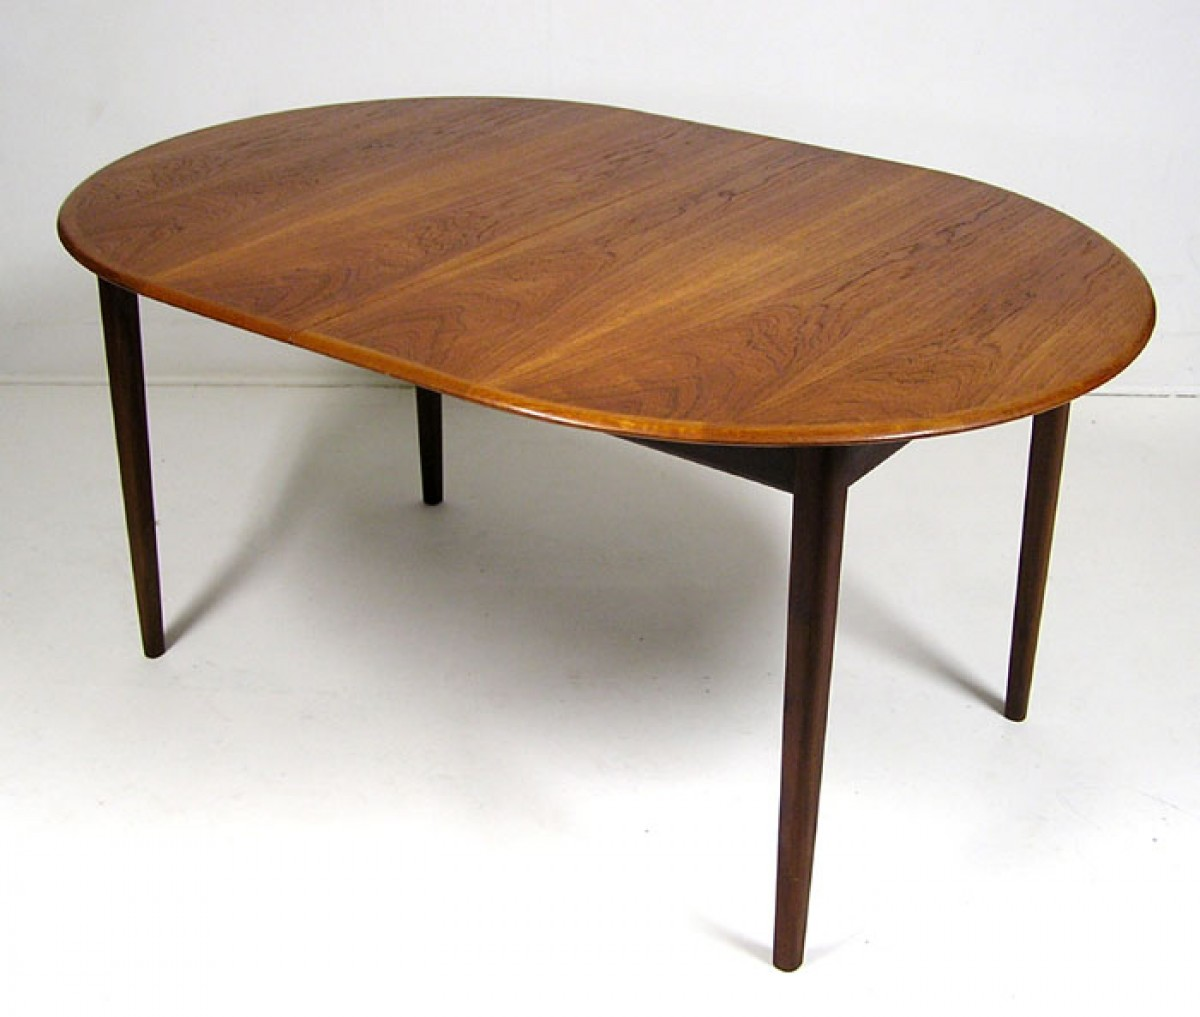 1960 S Danish Teak Oval Dining Table W Butterfly Leaf